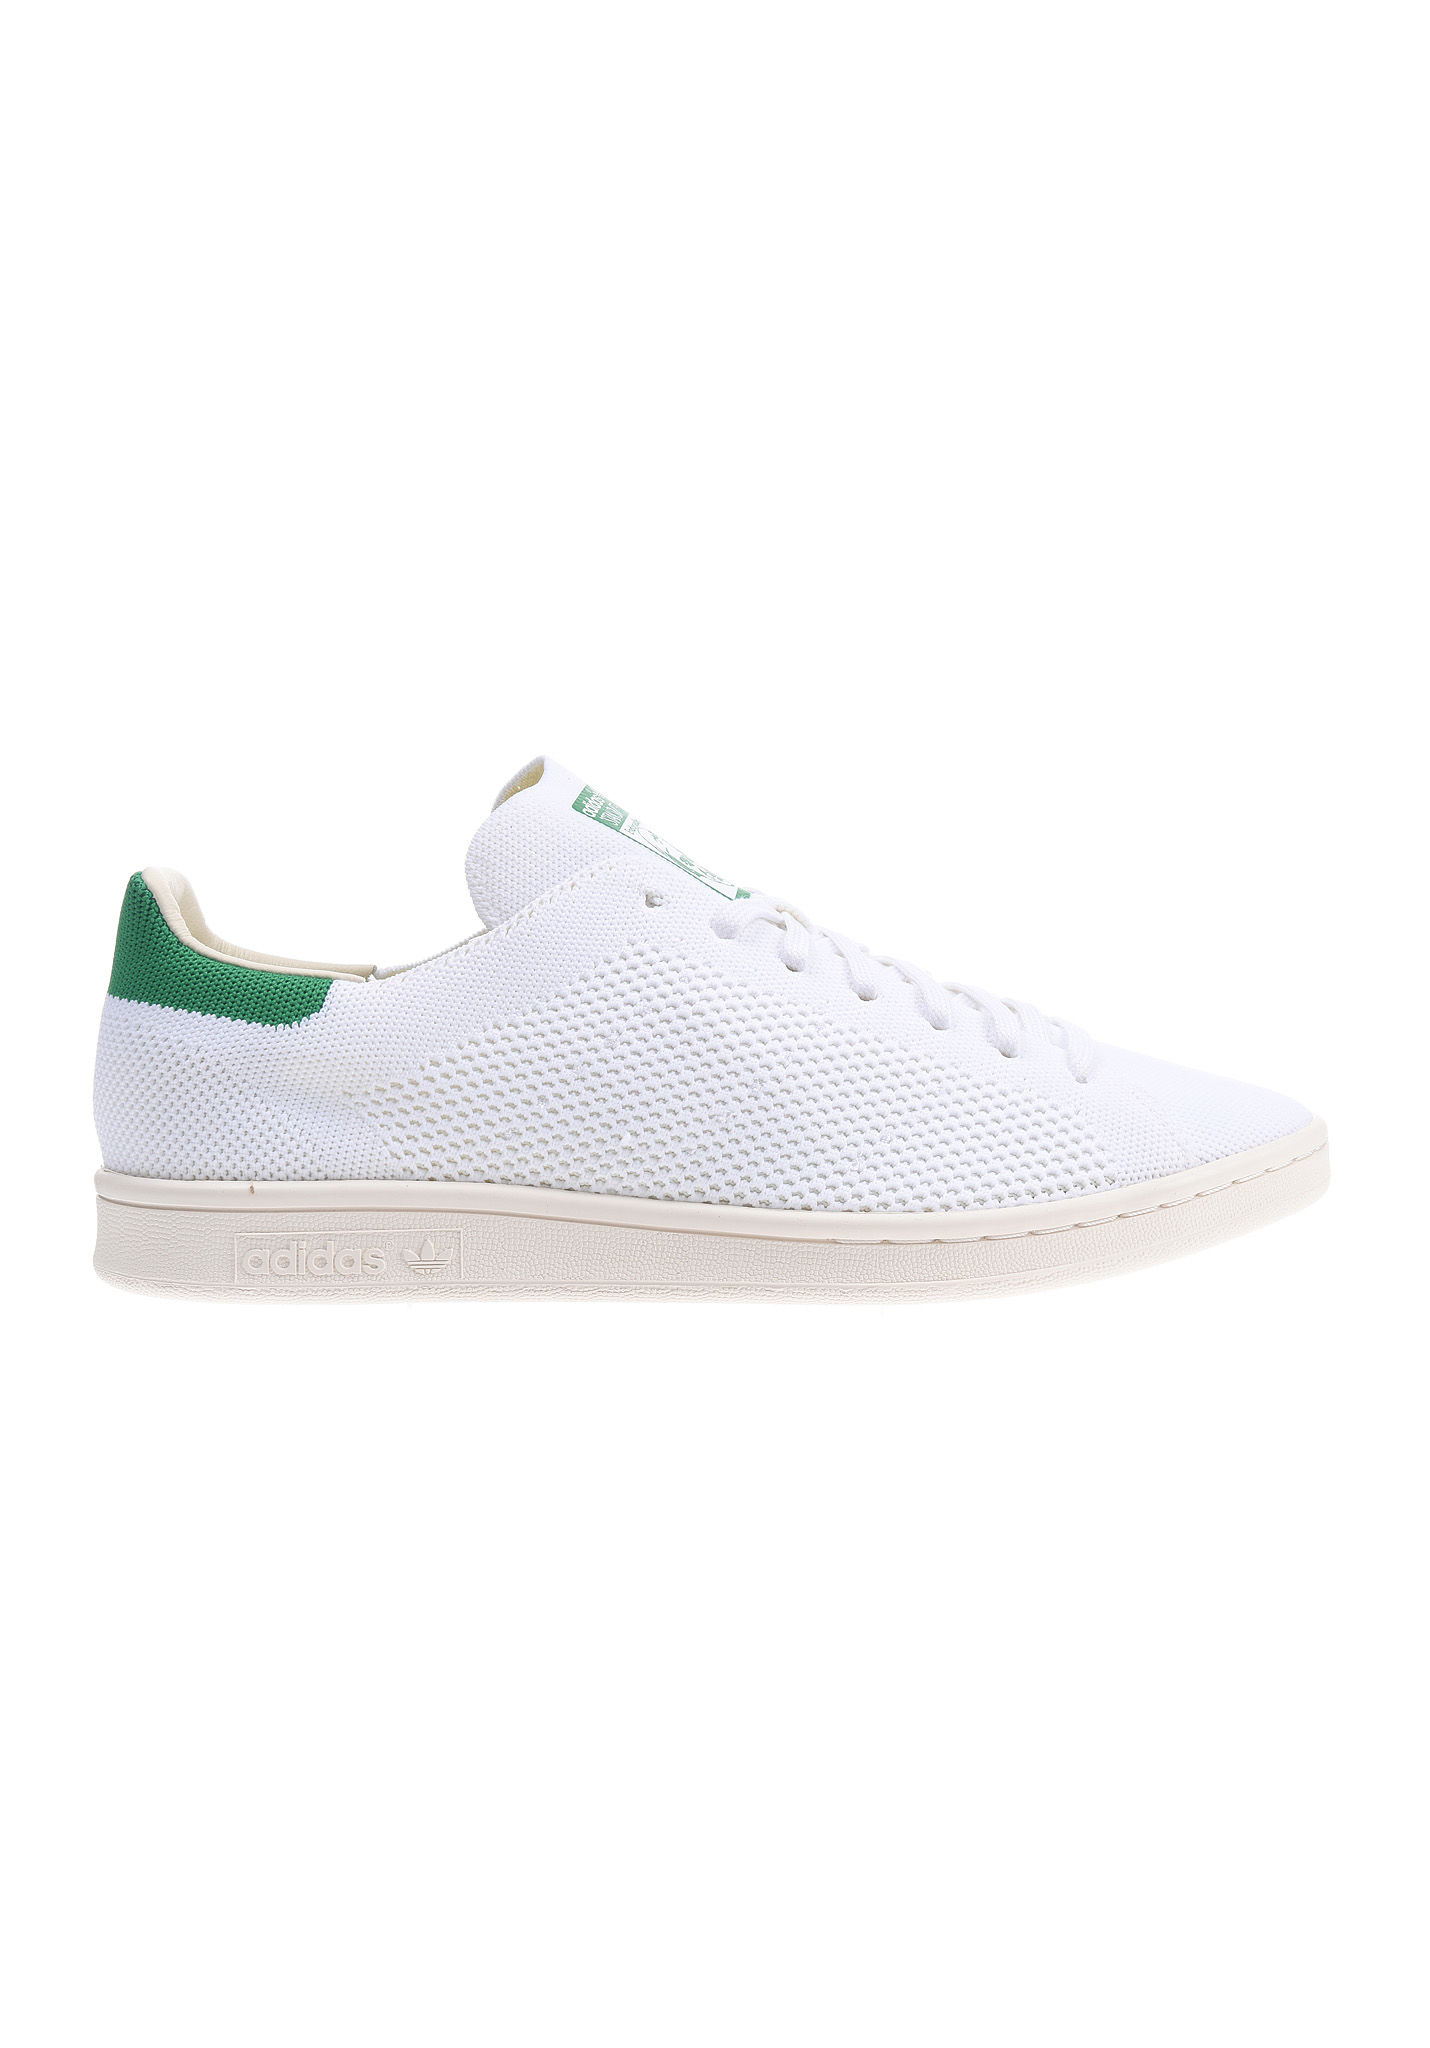 e15bfcce523 ADIDAS ORIGINALS Stan Smith OG Primeknit - Sneakers - White - Planet Sports